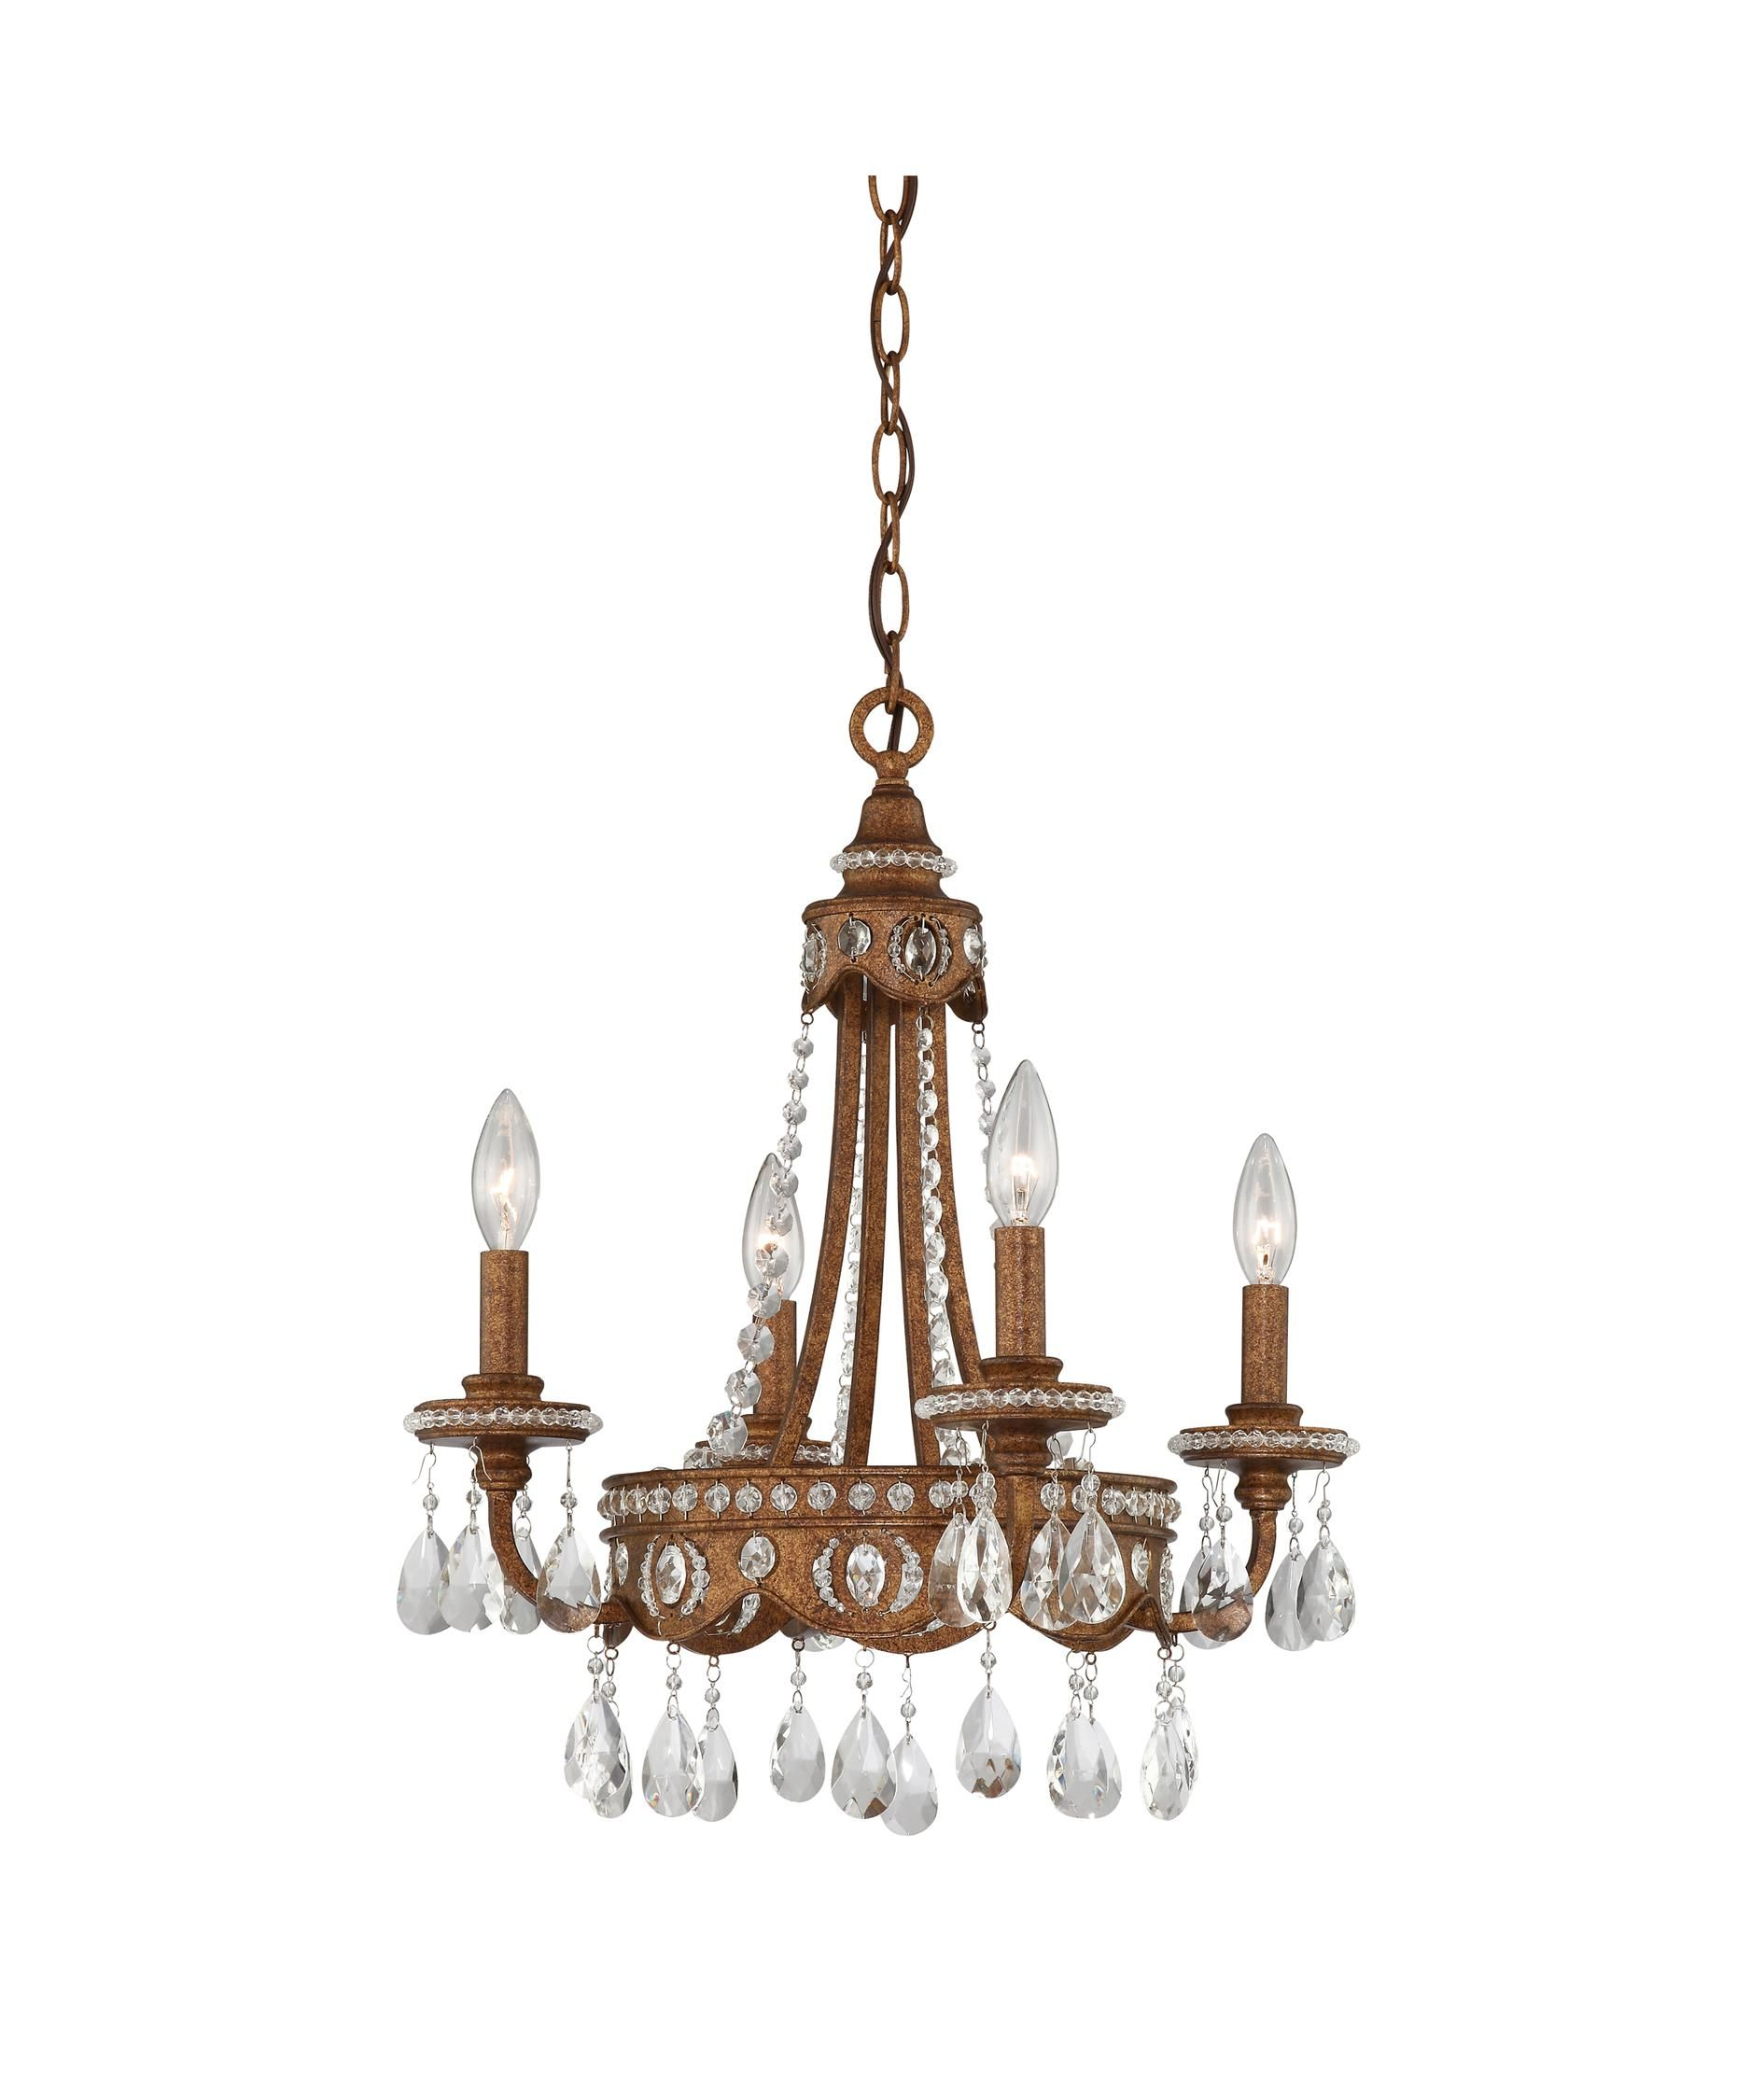 hampton living small luxury glass mini lights crystal french chandeliers room pendant bay gold ball chandelier